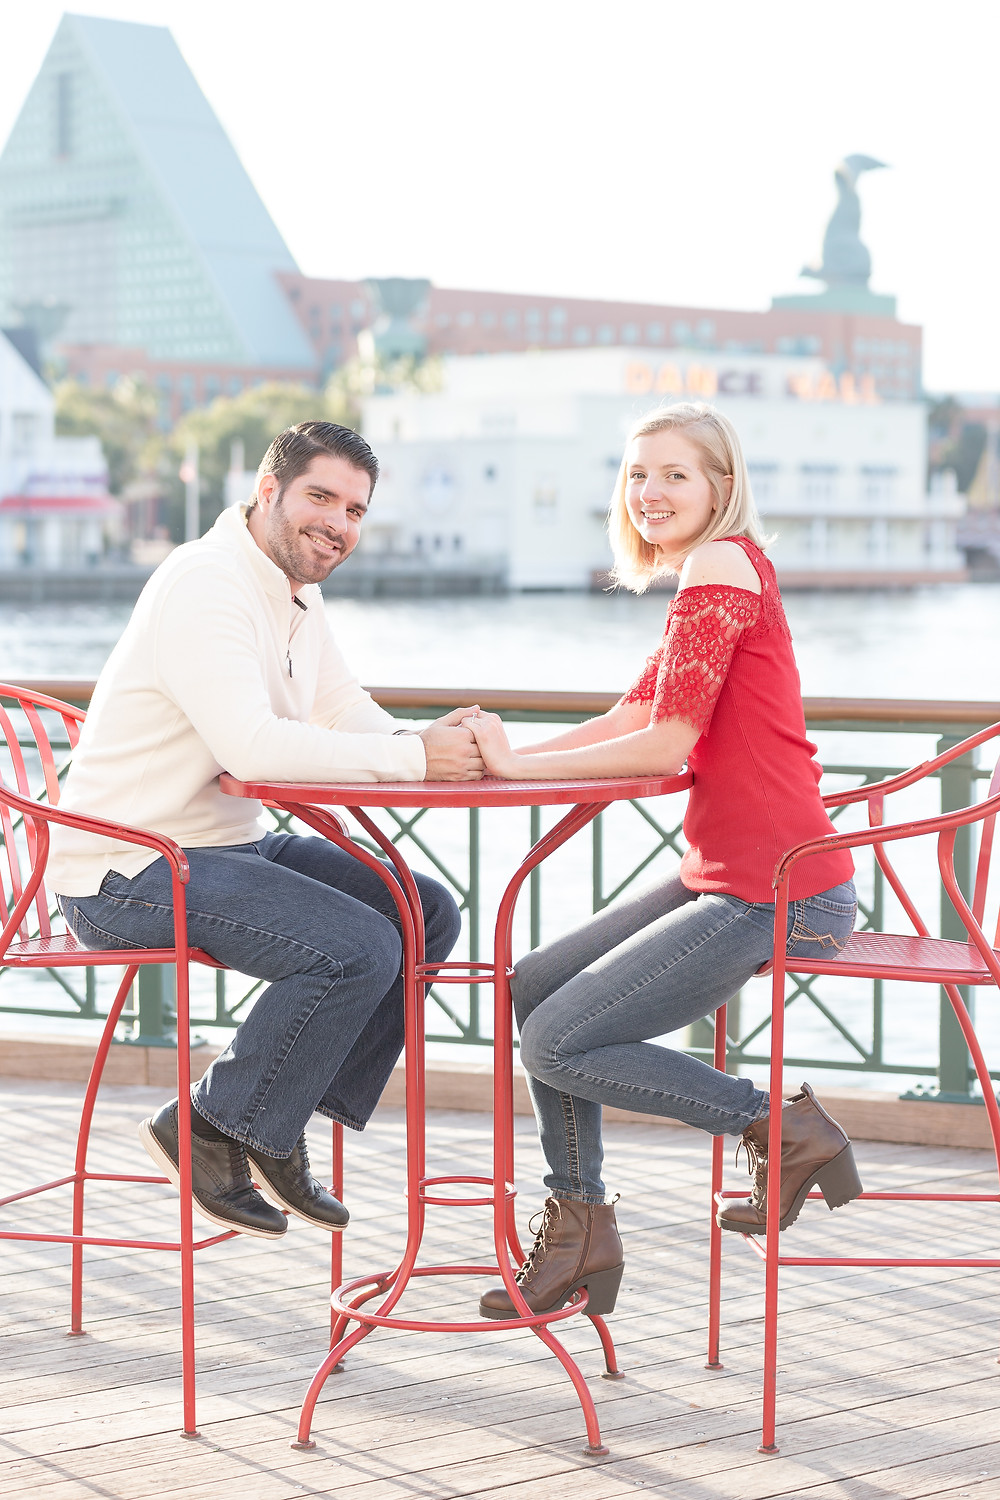 Orlando wedding photographer. Disney Boardwalk Engagement Session: Megan & Ryan